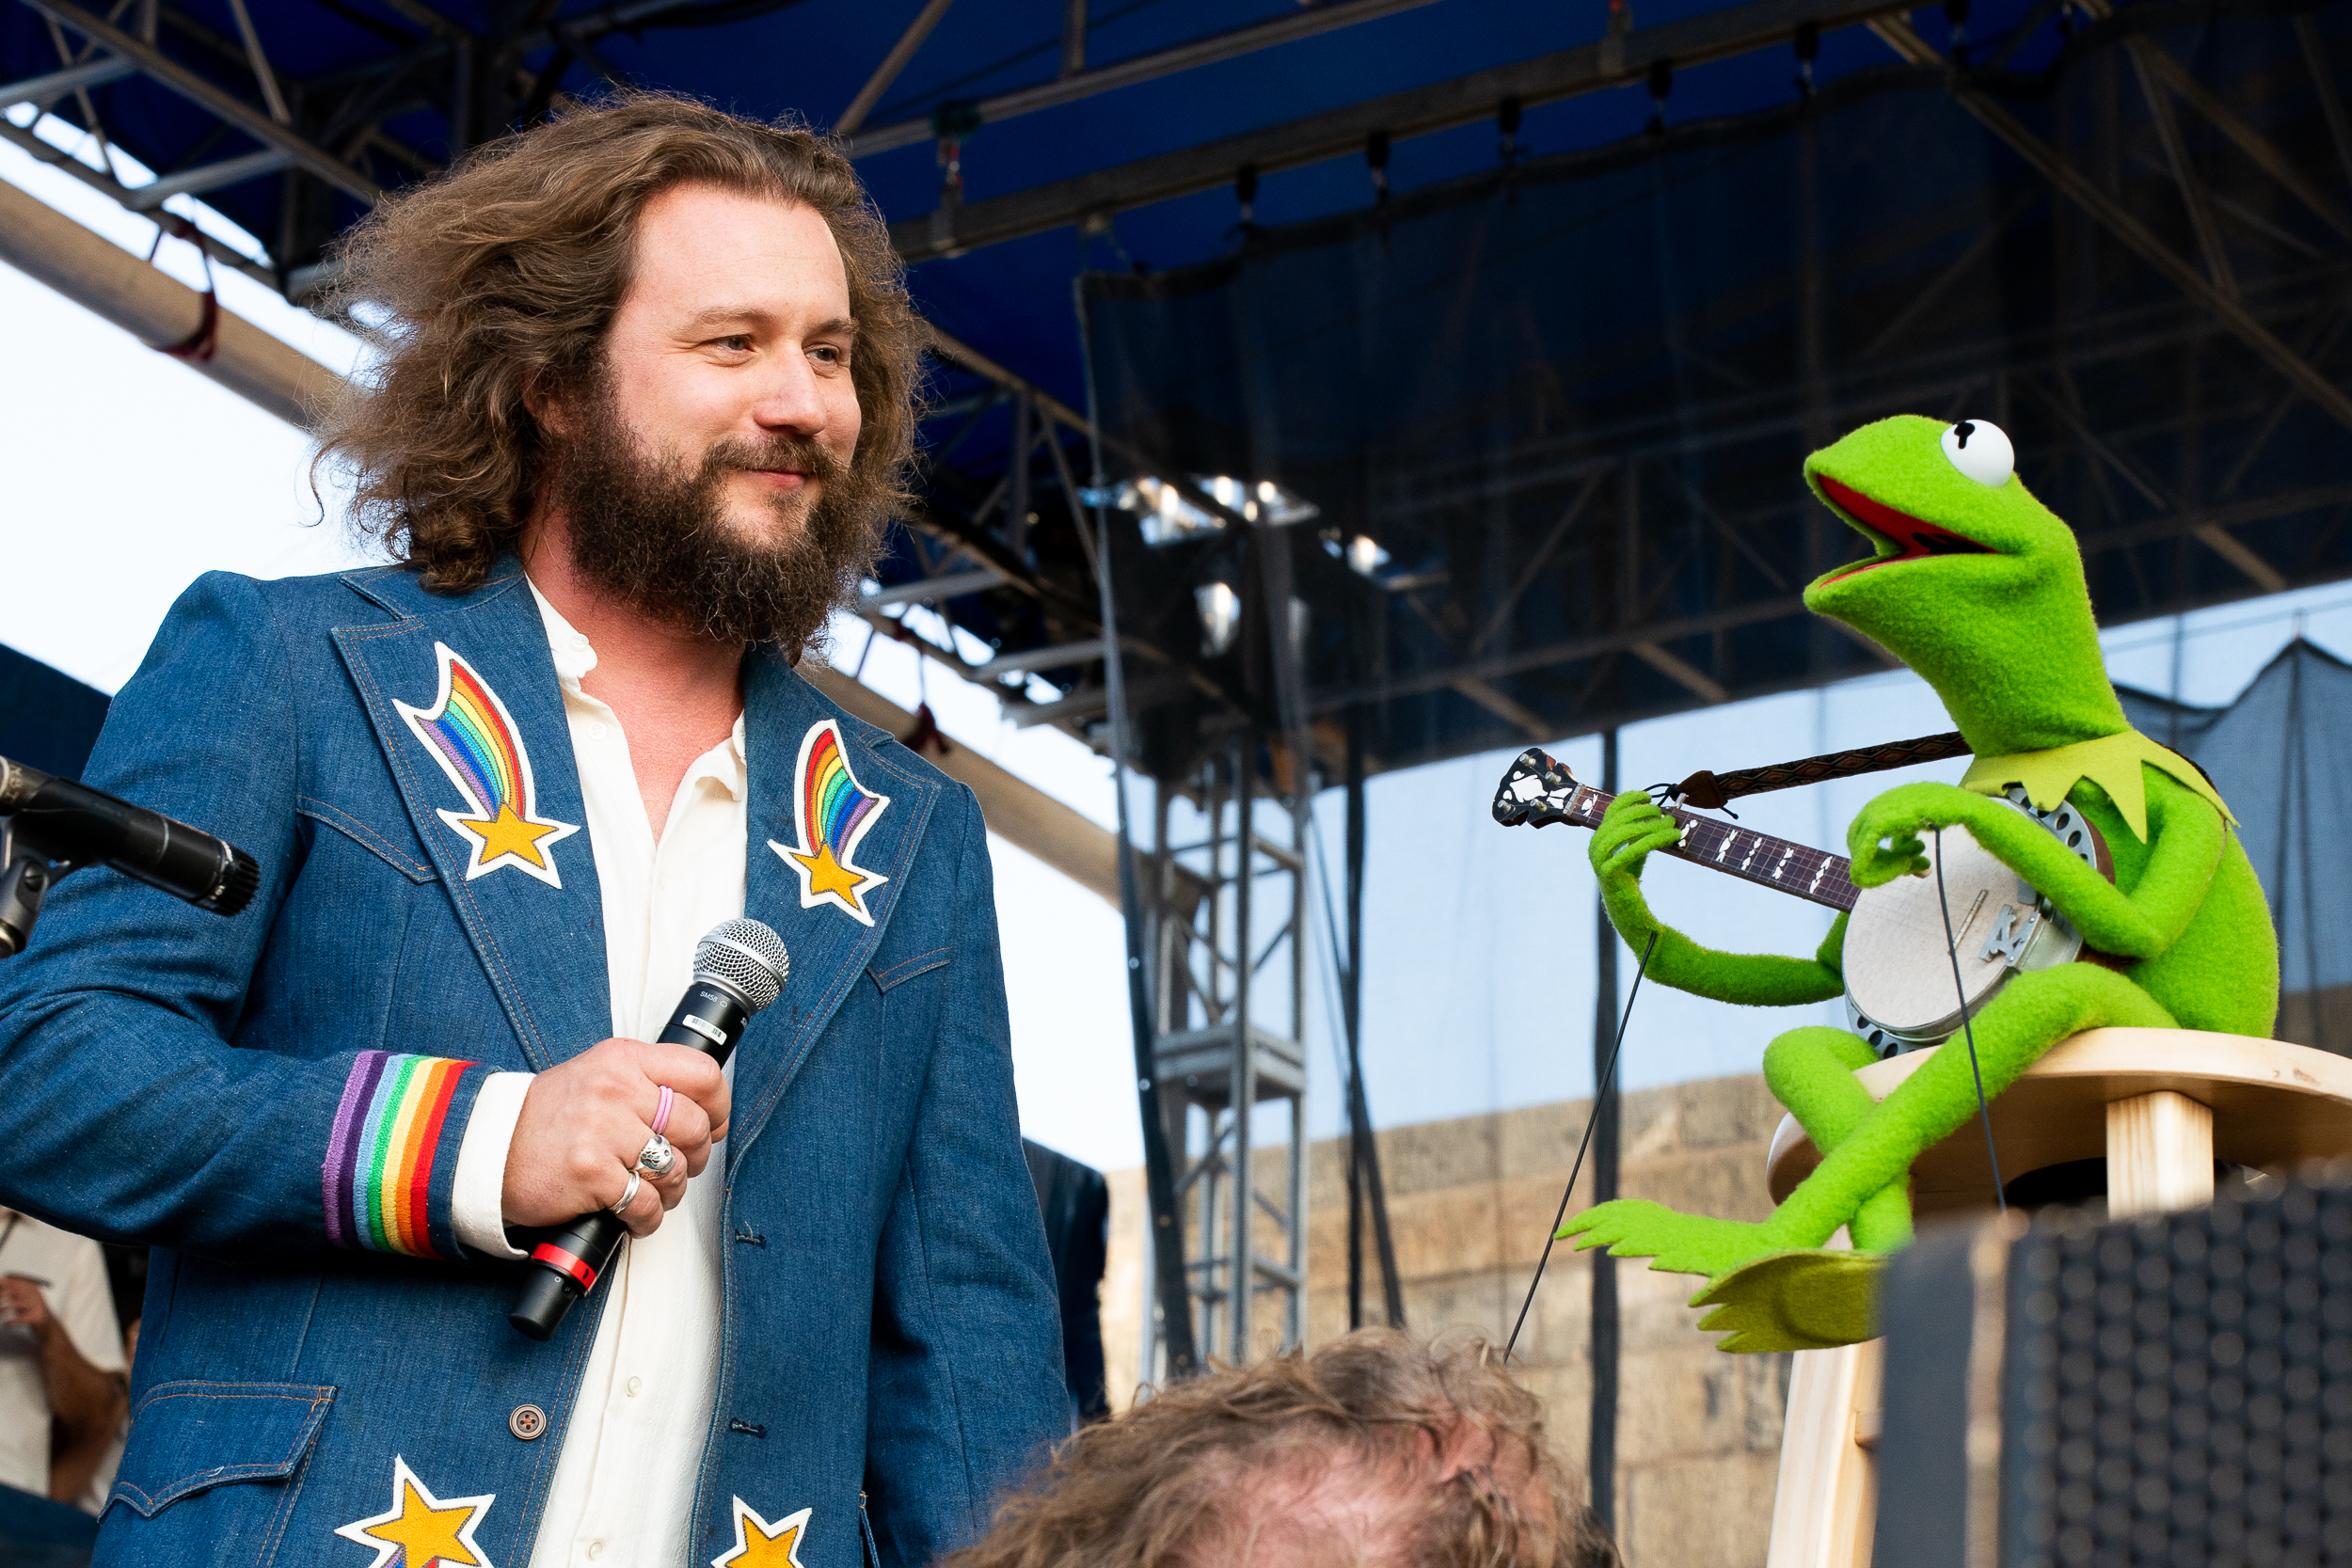 Jim James and Kermit the Frog at Newport Folk Festival (Photo by Mauricio Castro)